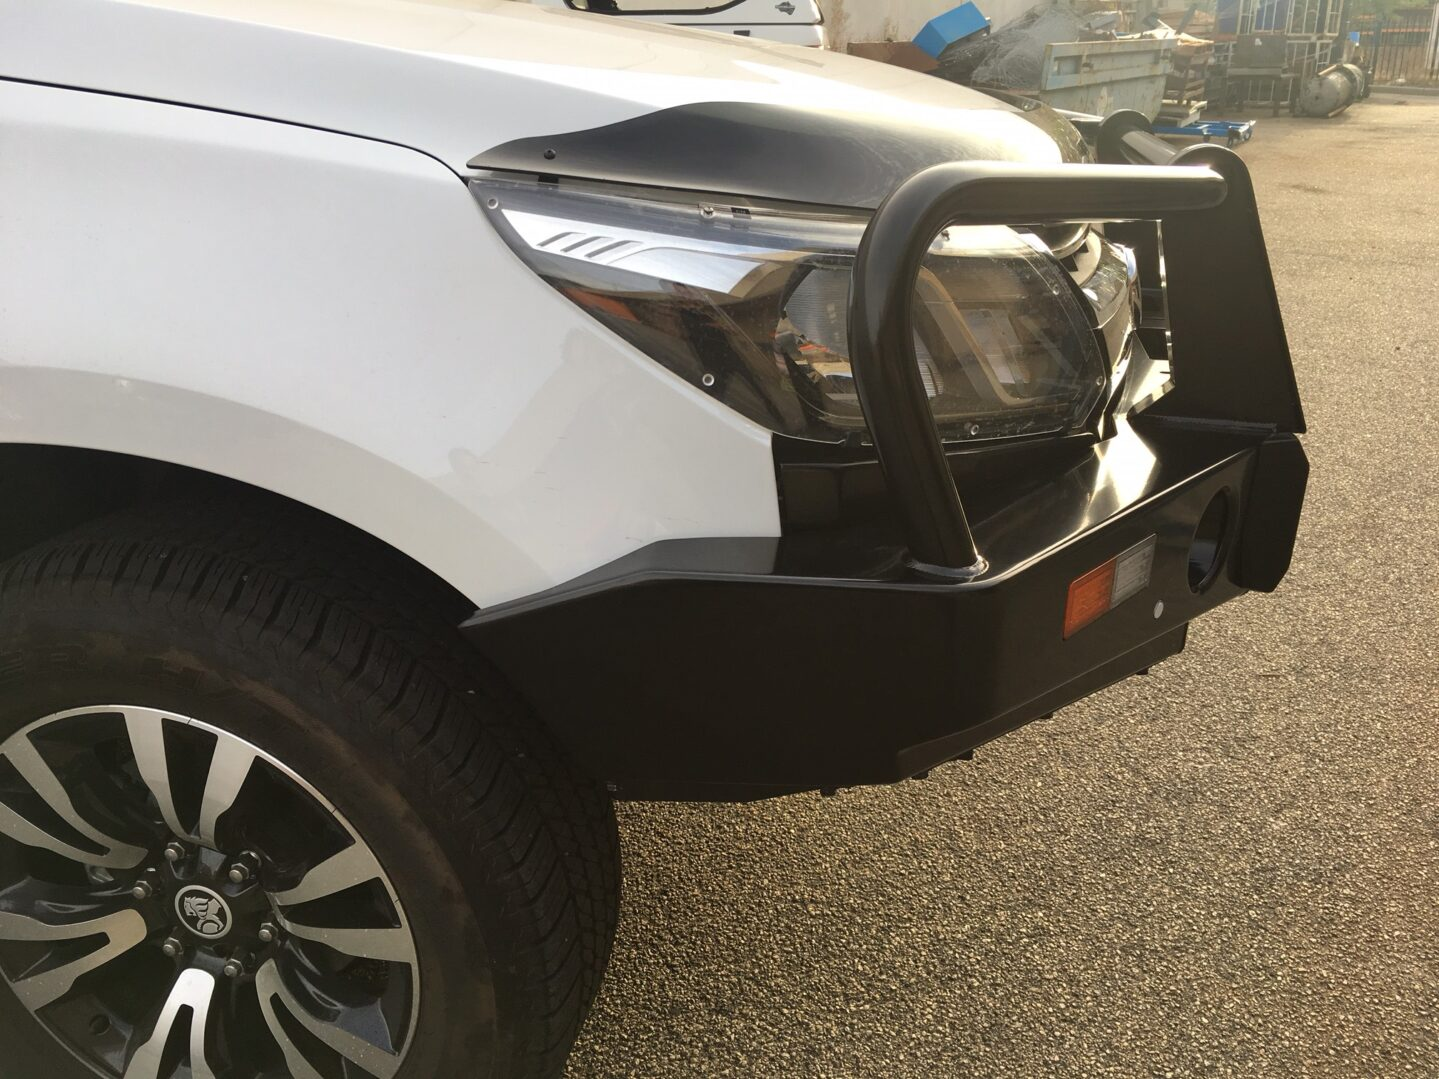 New side Bullbar Perth for sale for Colorado